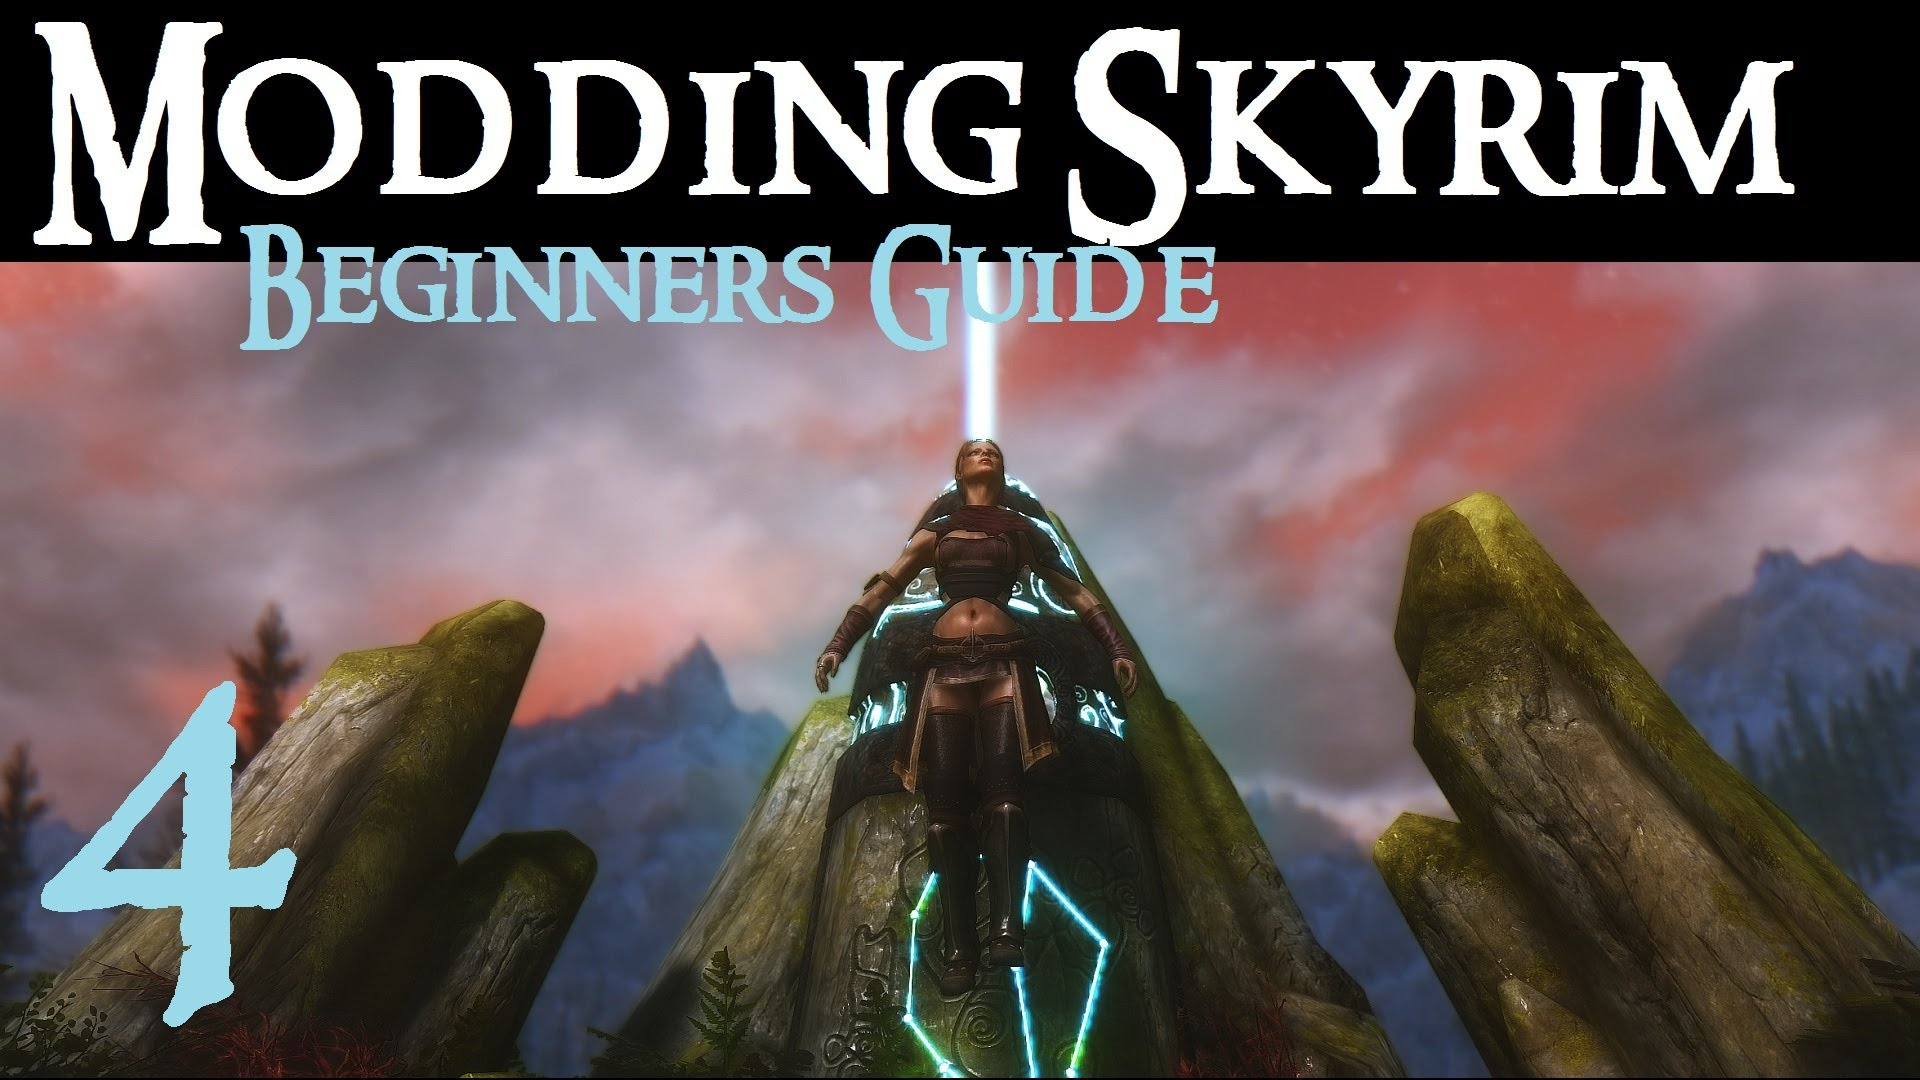 Gophers Vids » Beginners Guide to Modding Skyrim